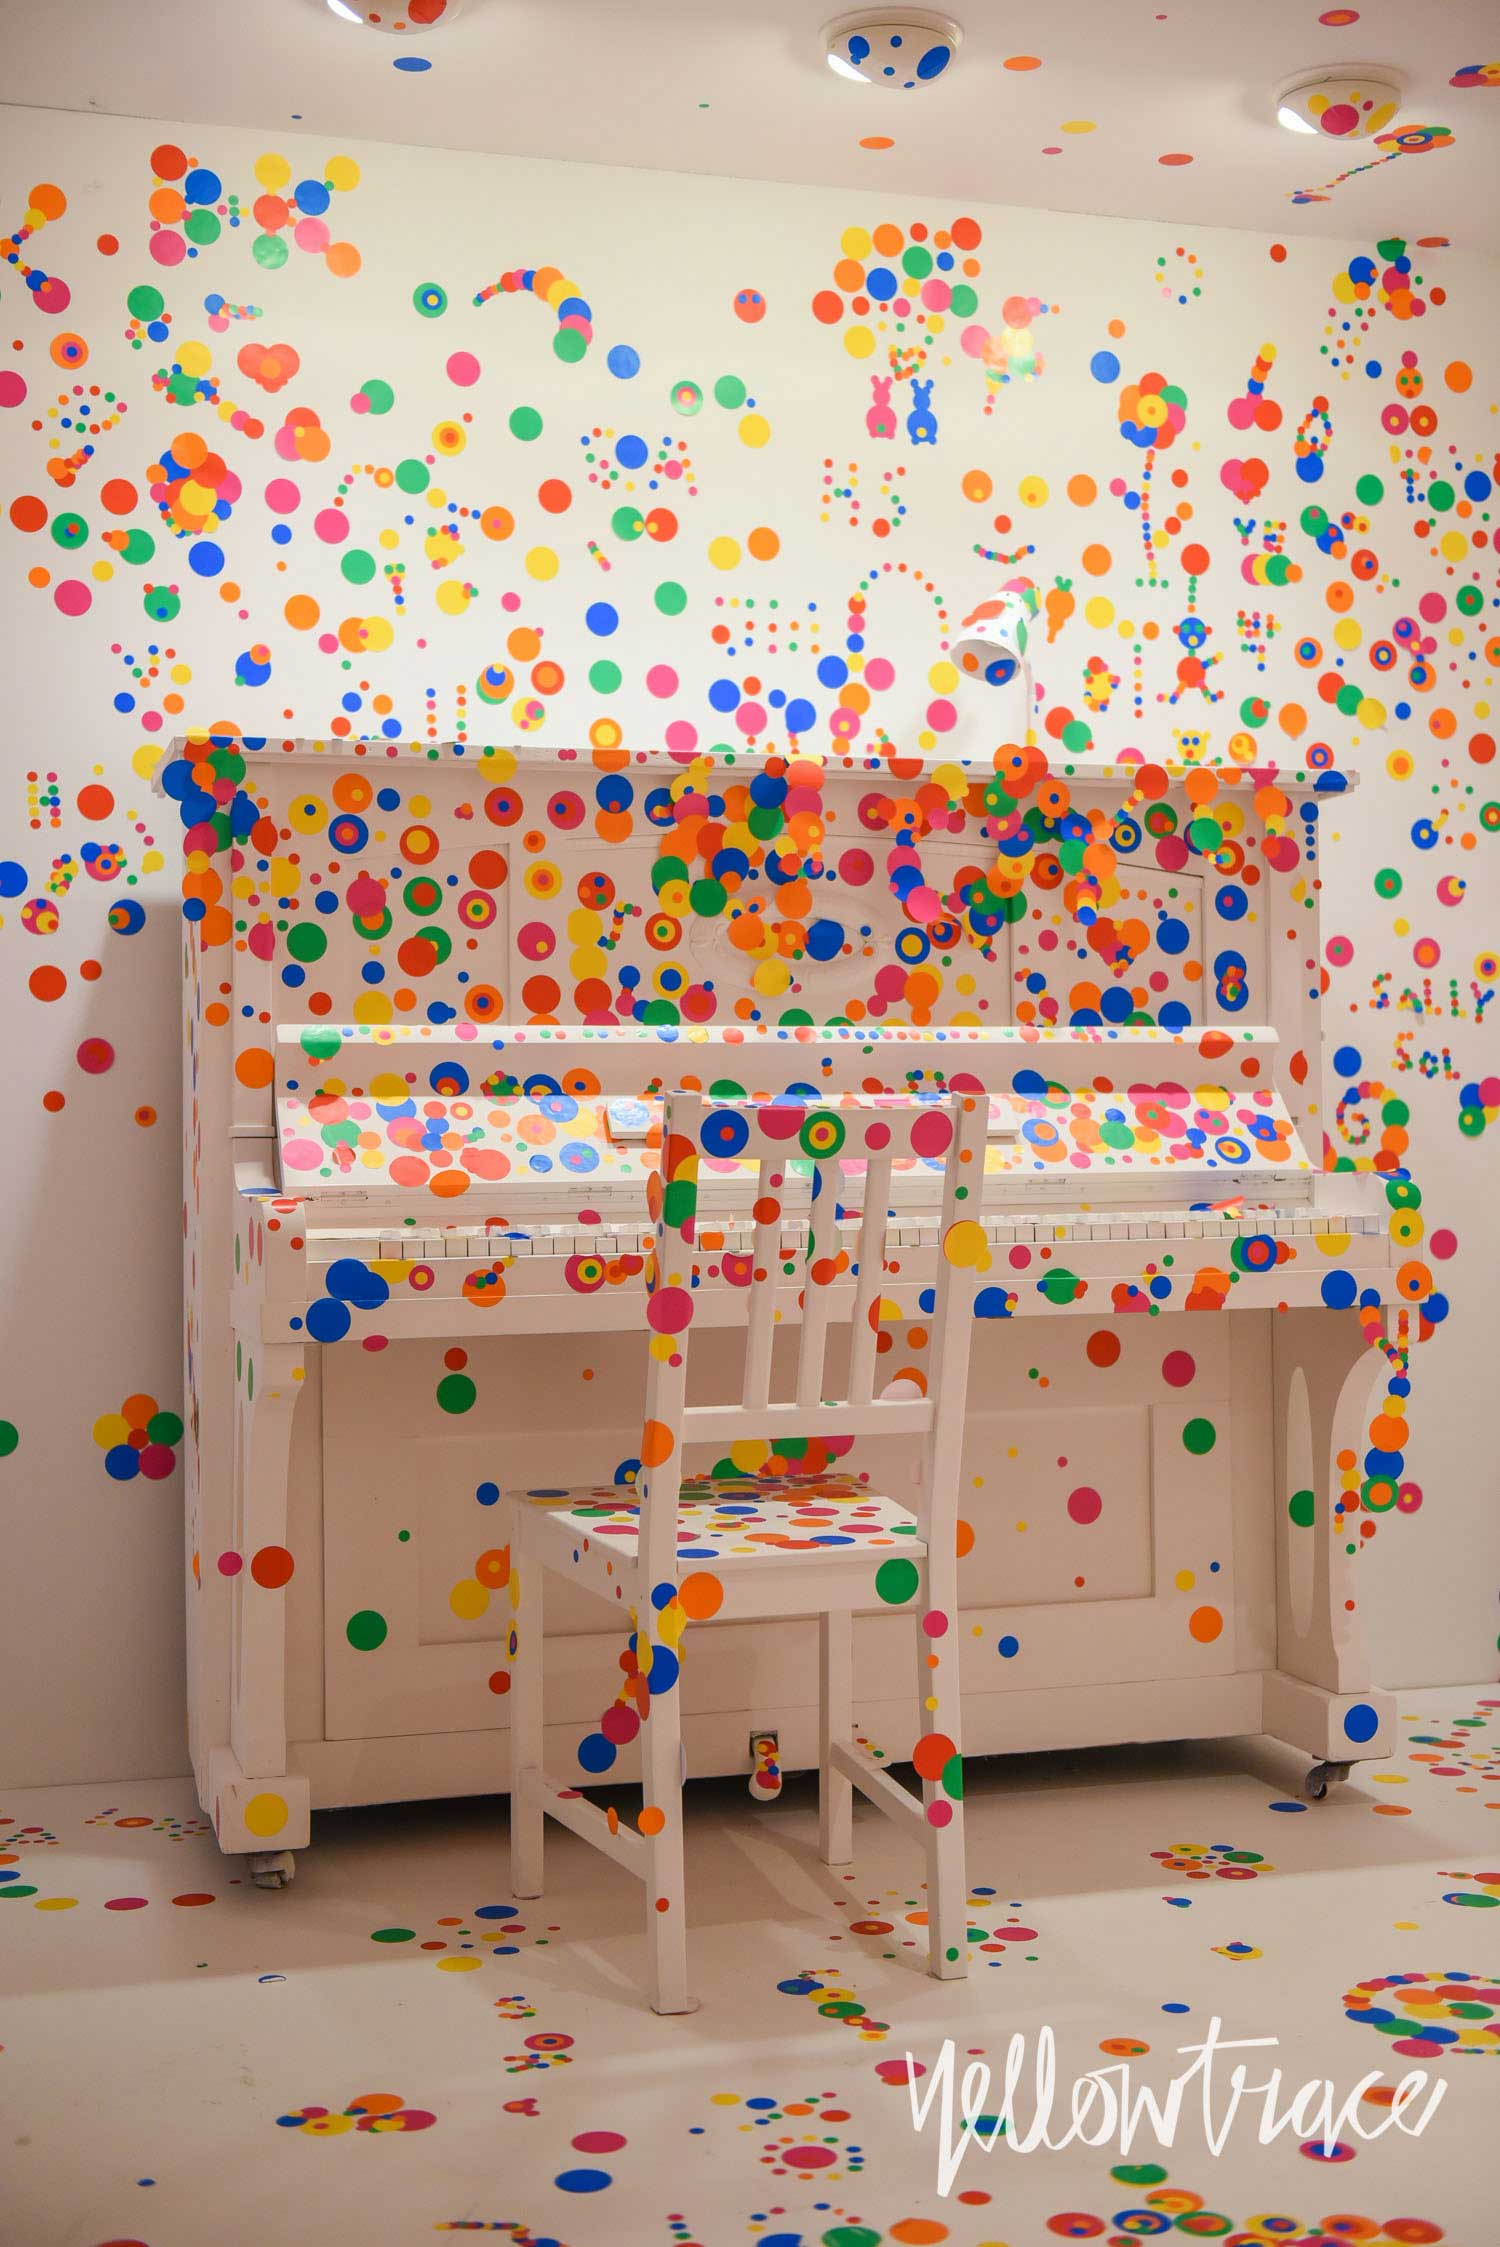 Yayoi Kusama at Louisiana Museum Denmark, Photo © Nick Hughes | Yellowtrace